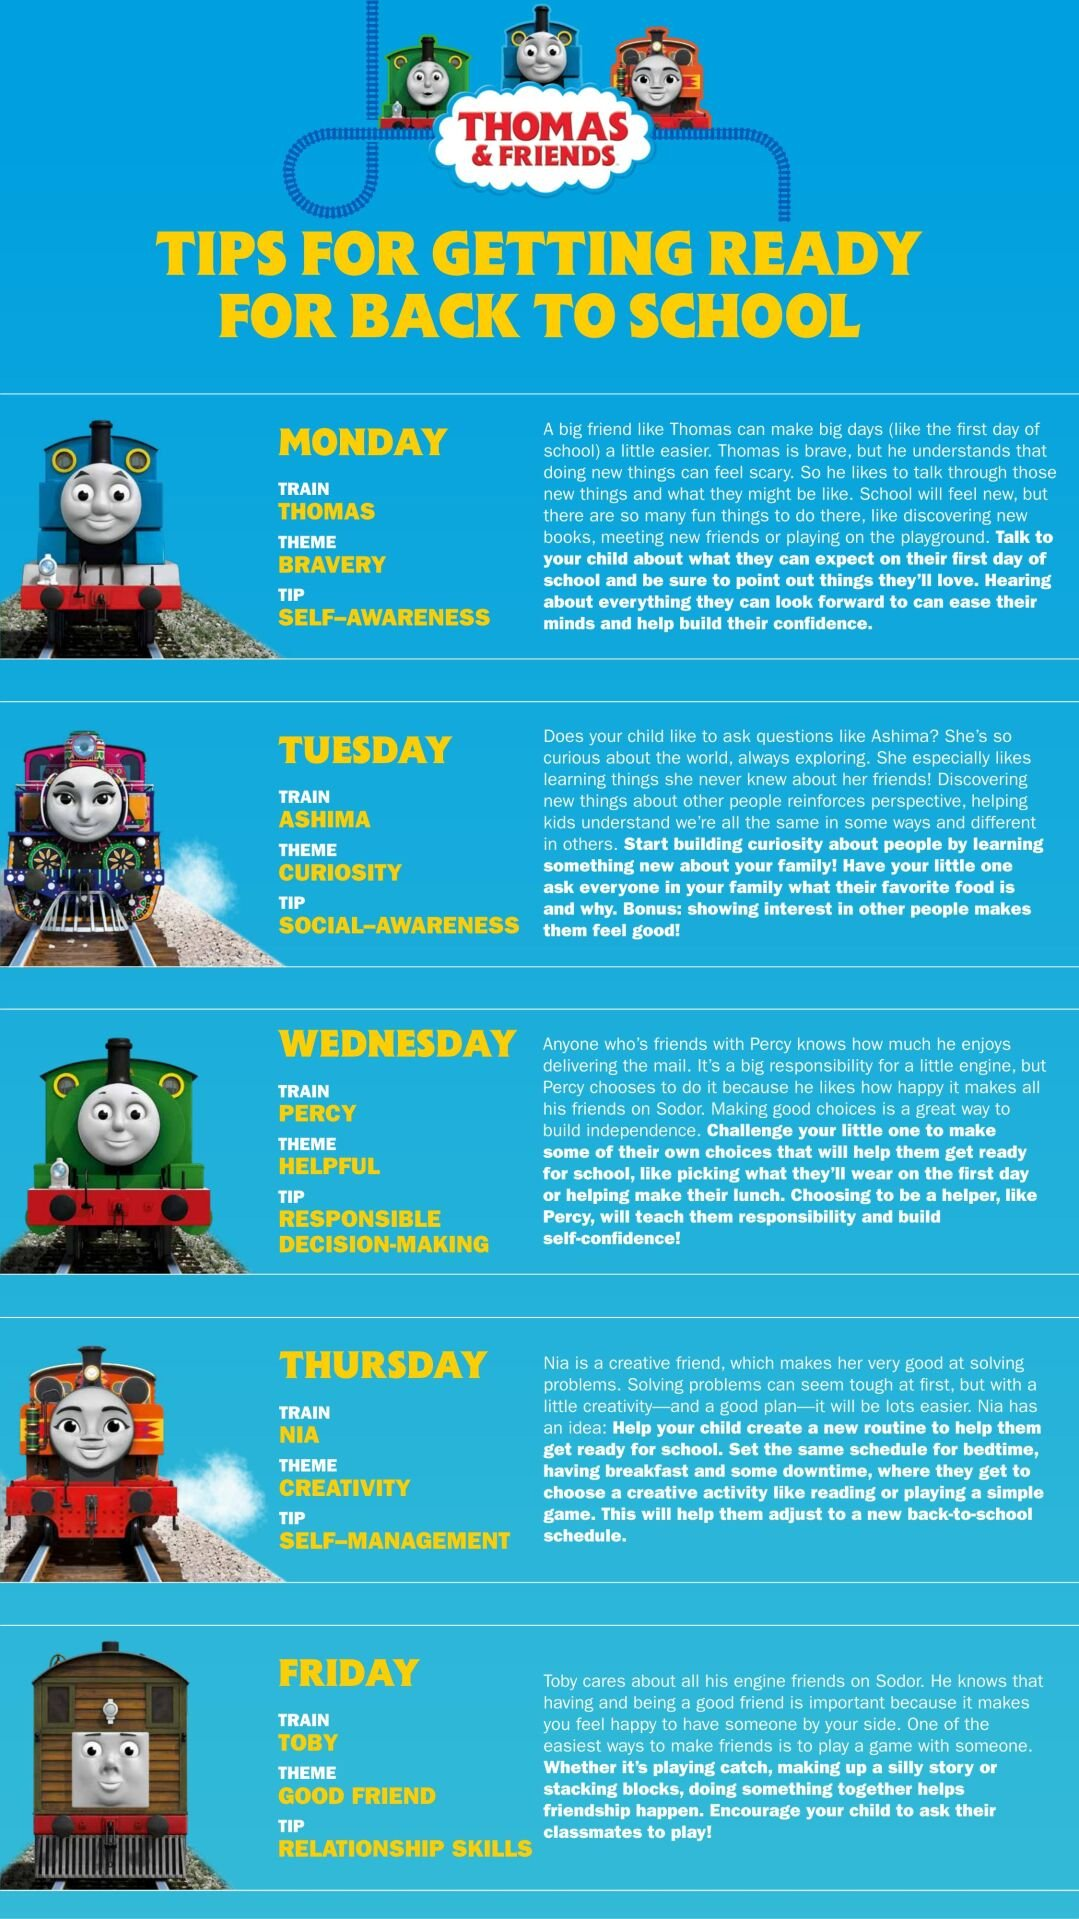 Getting Ready For Back To School Tips From Thomas & Friends